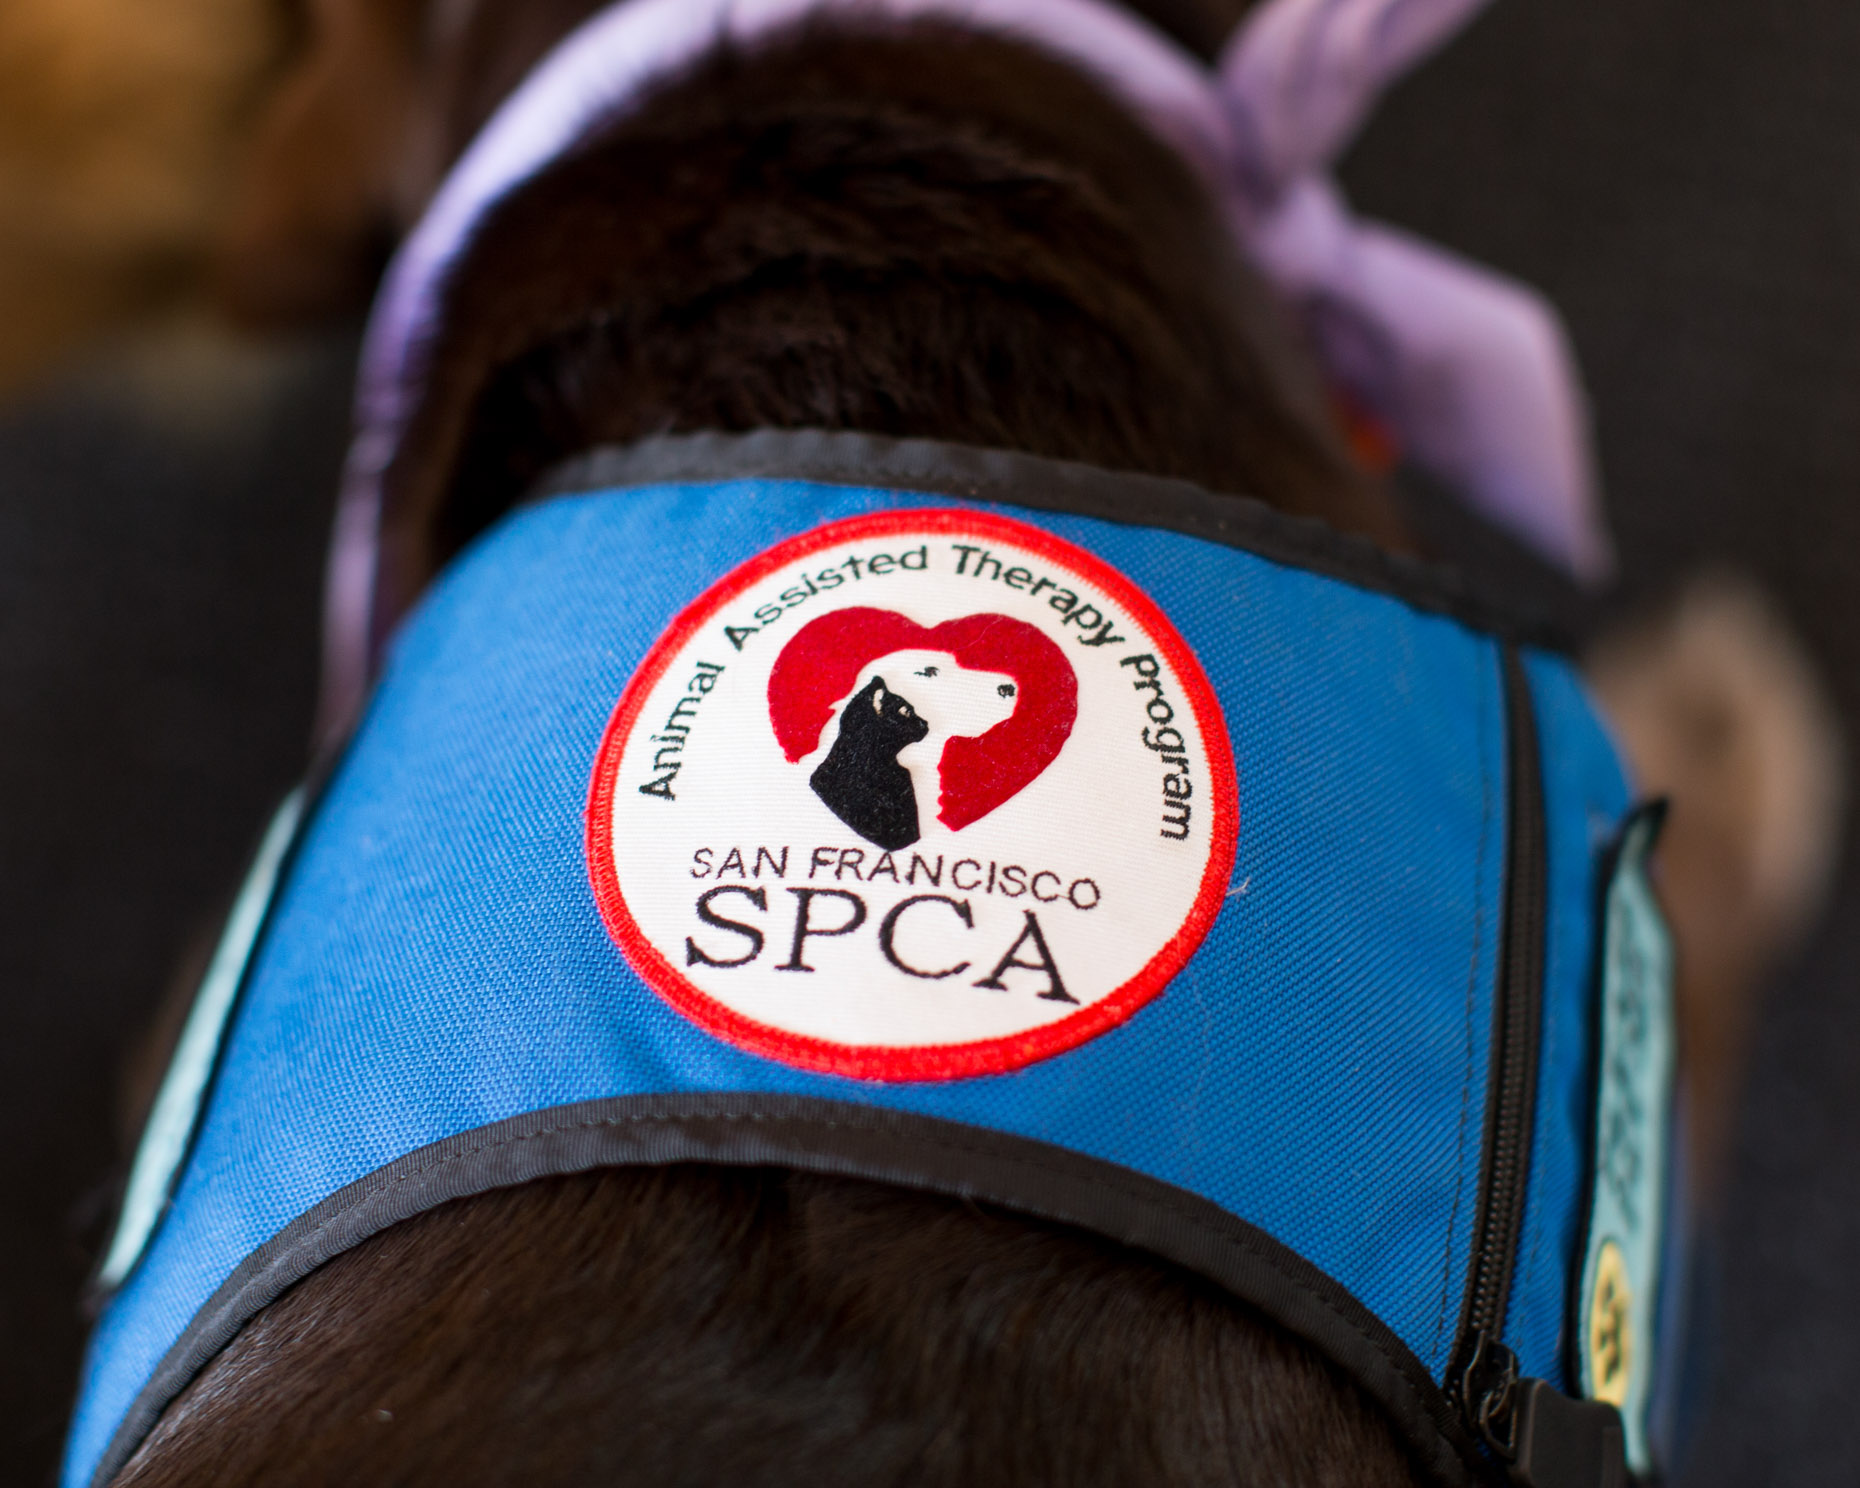 Editorial Photography | SPCA Therapy Vest Close-up by Mark Rogers